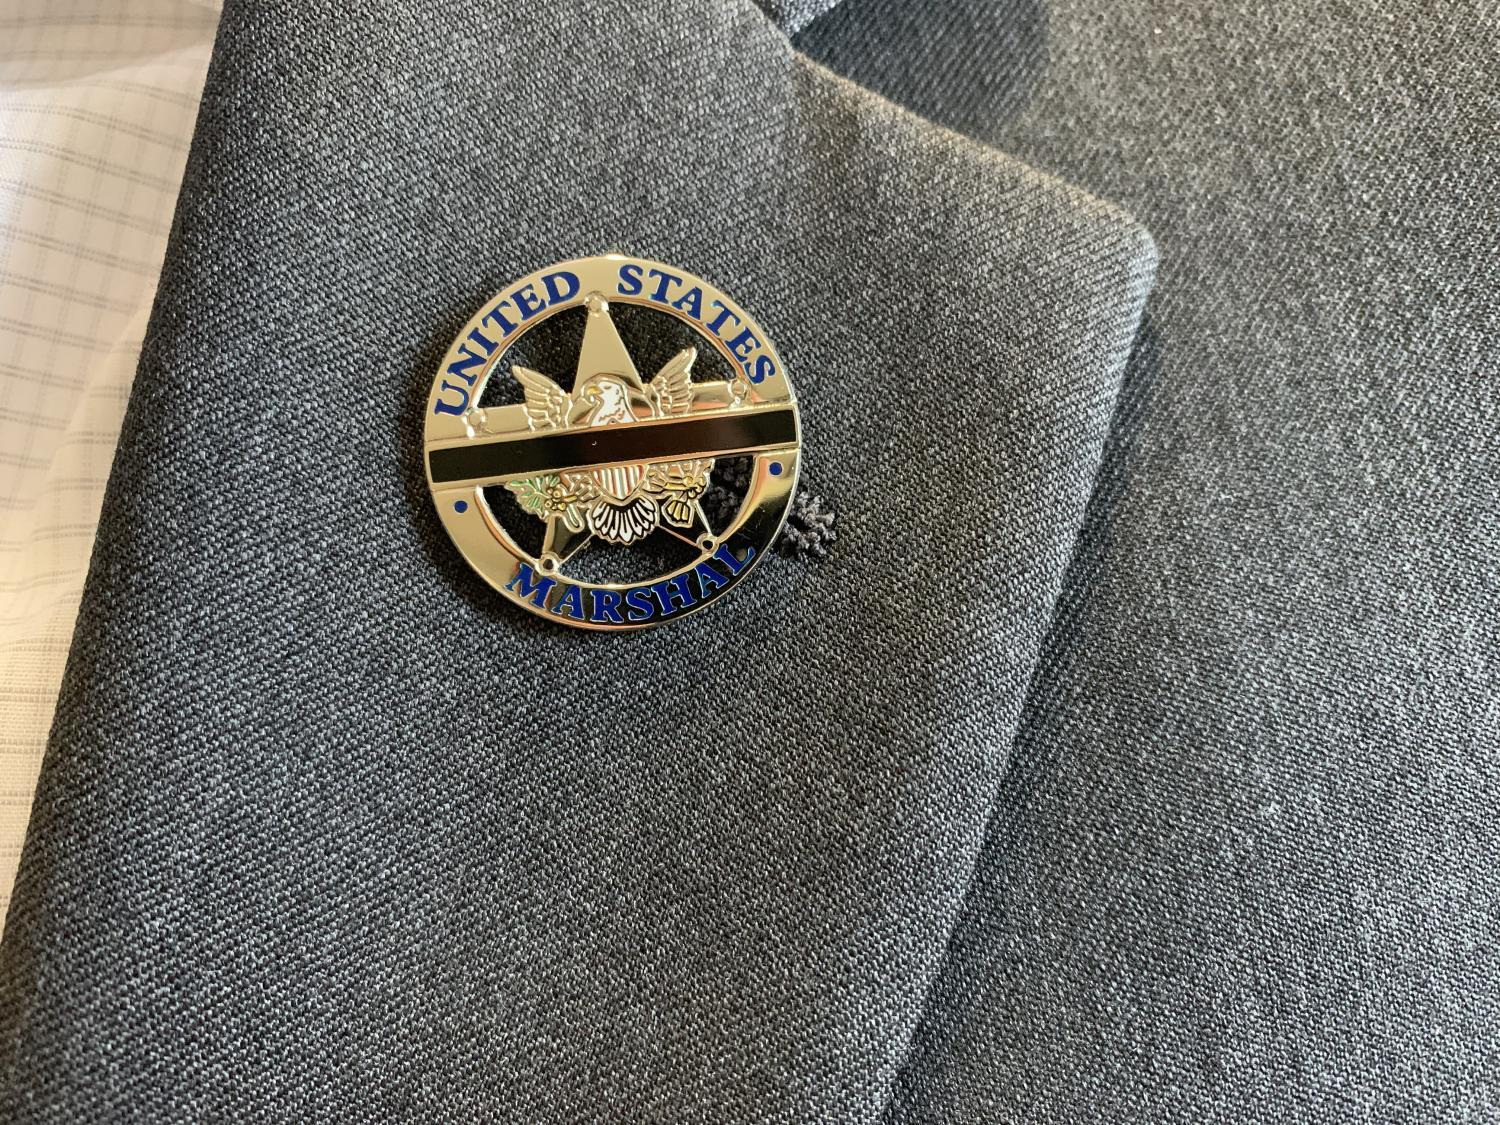 A lapel pin on an agent